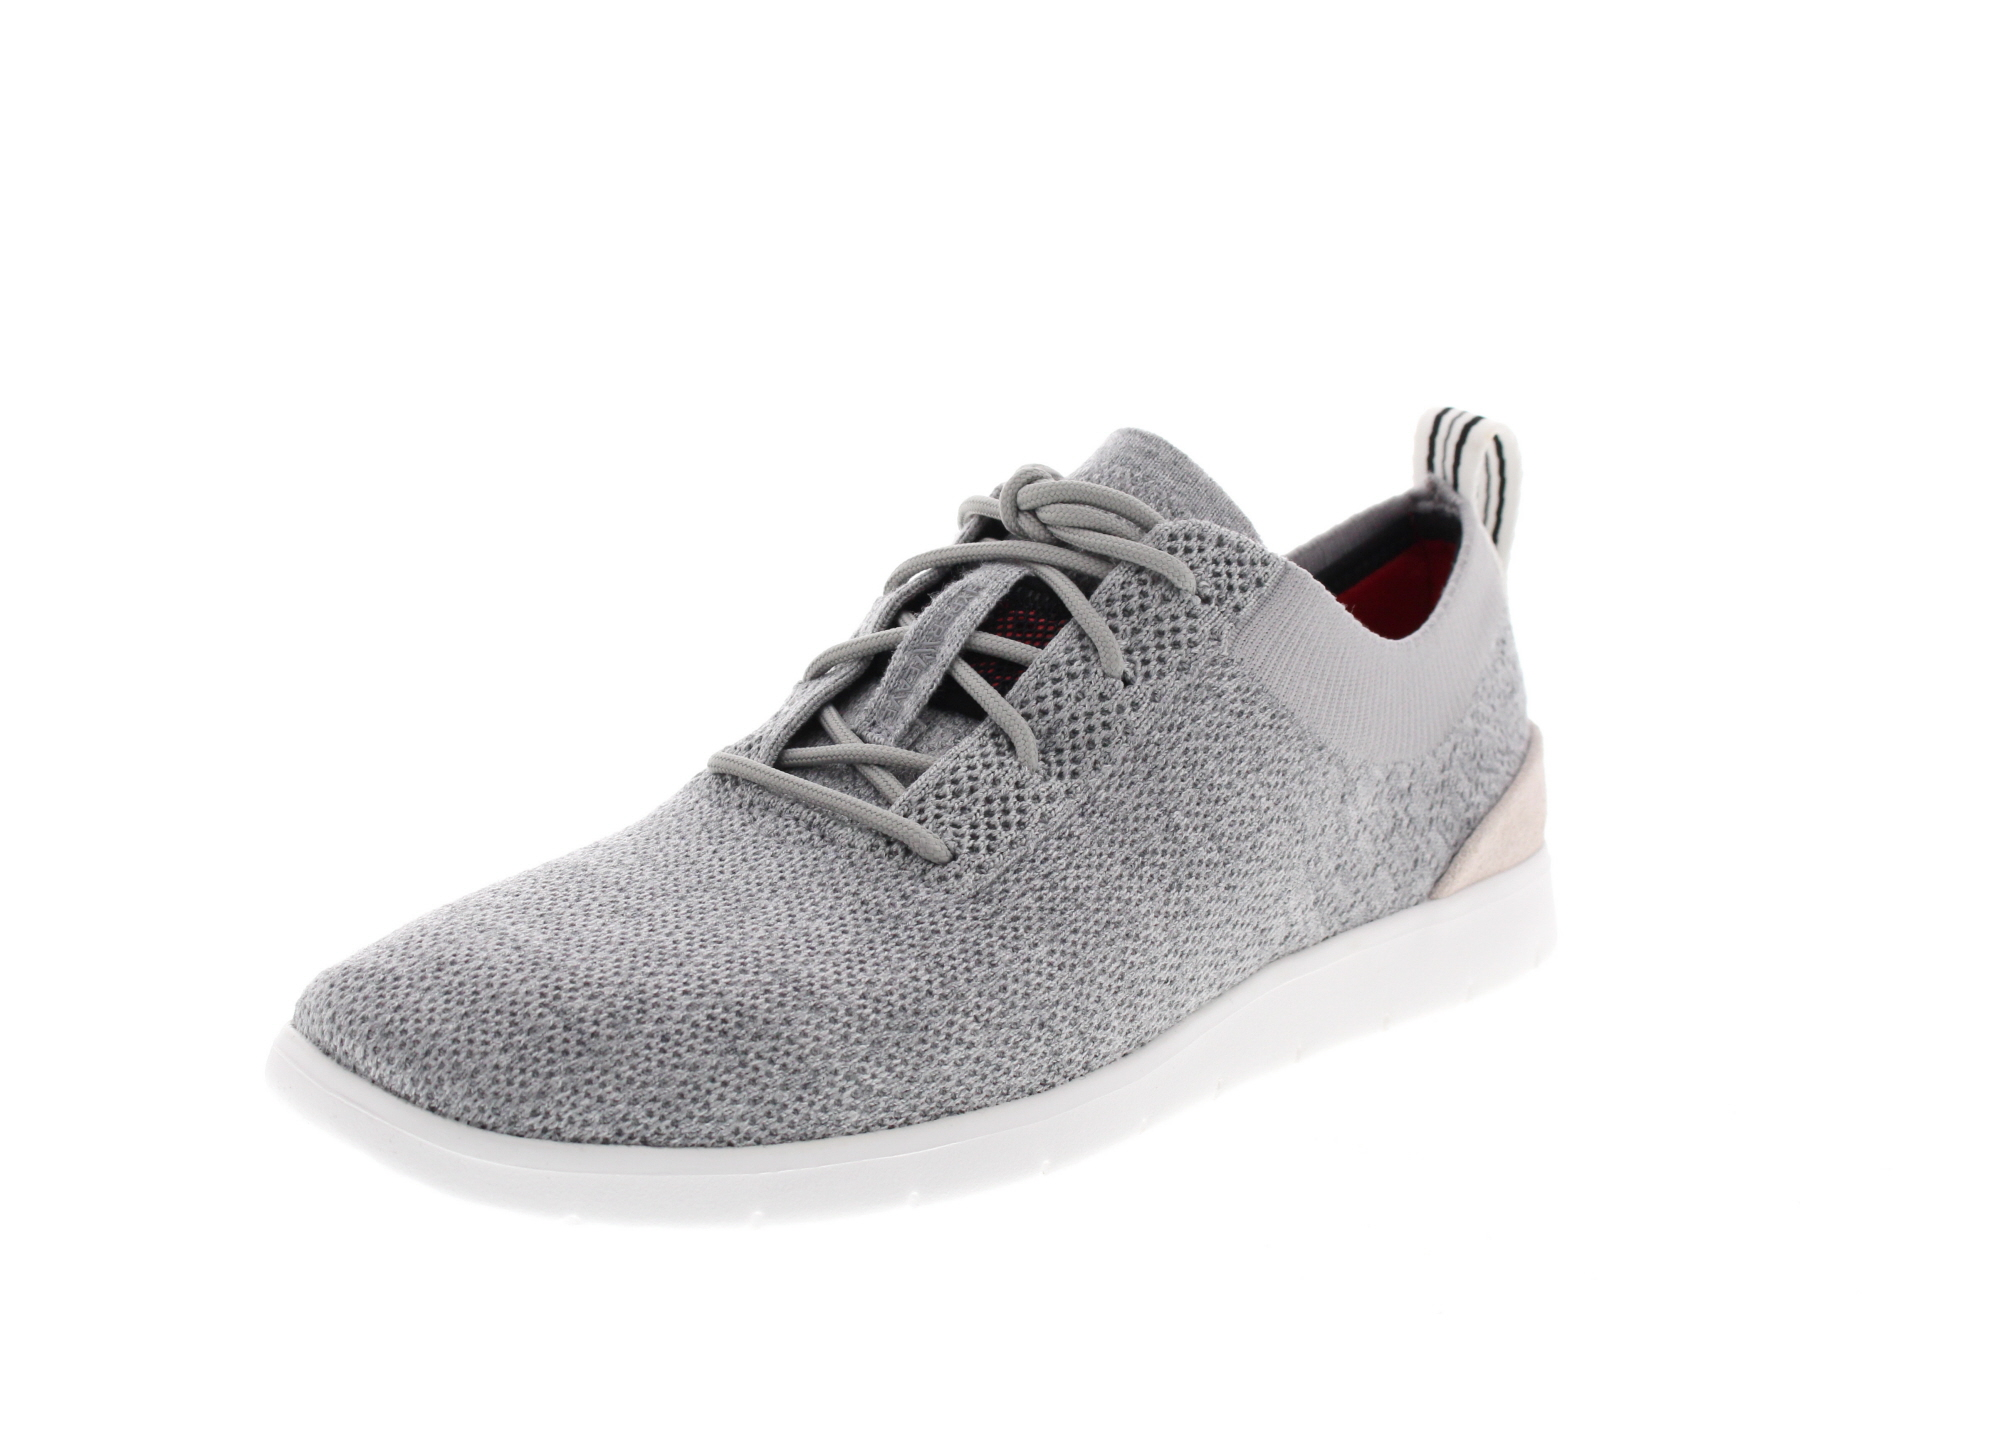 UGG Herrenschuhe - Sneakers FELI HYPERWEAVE - seal_0